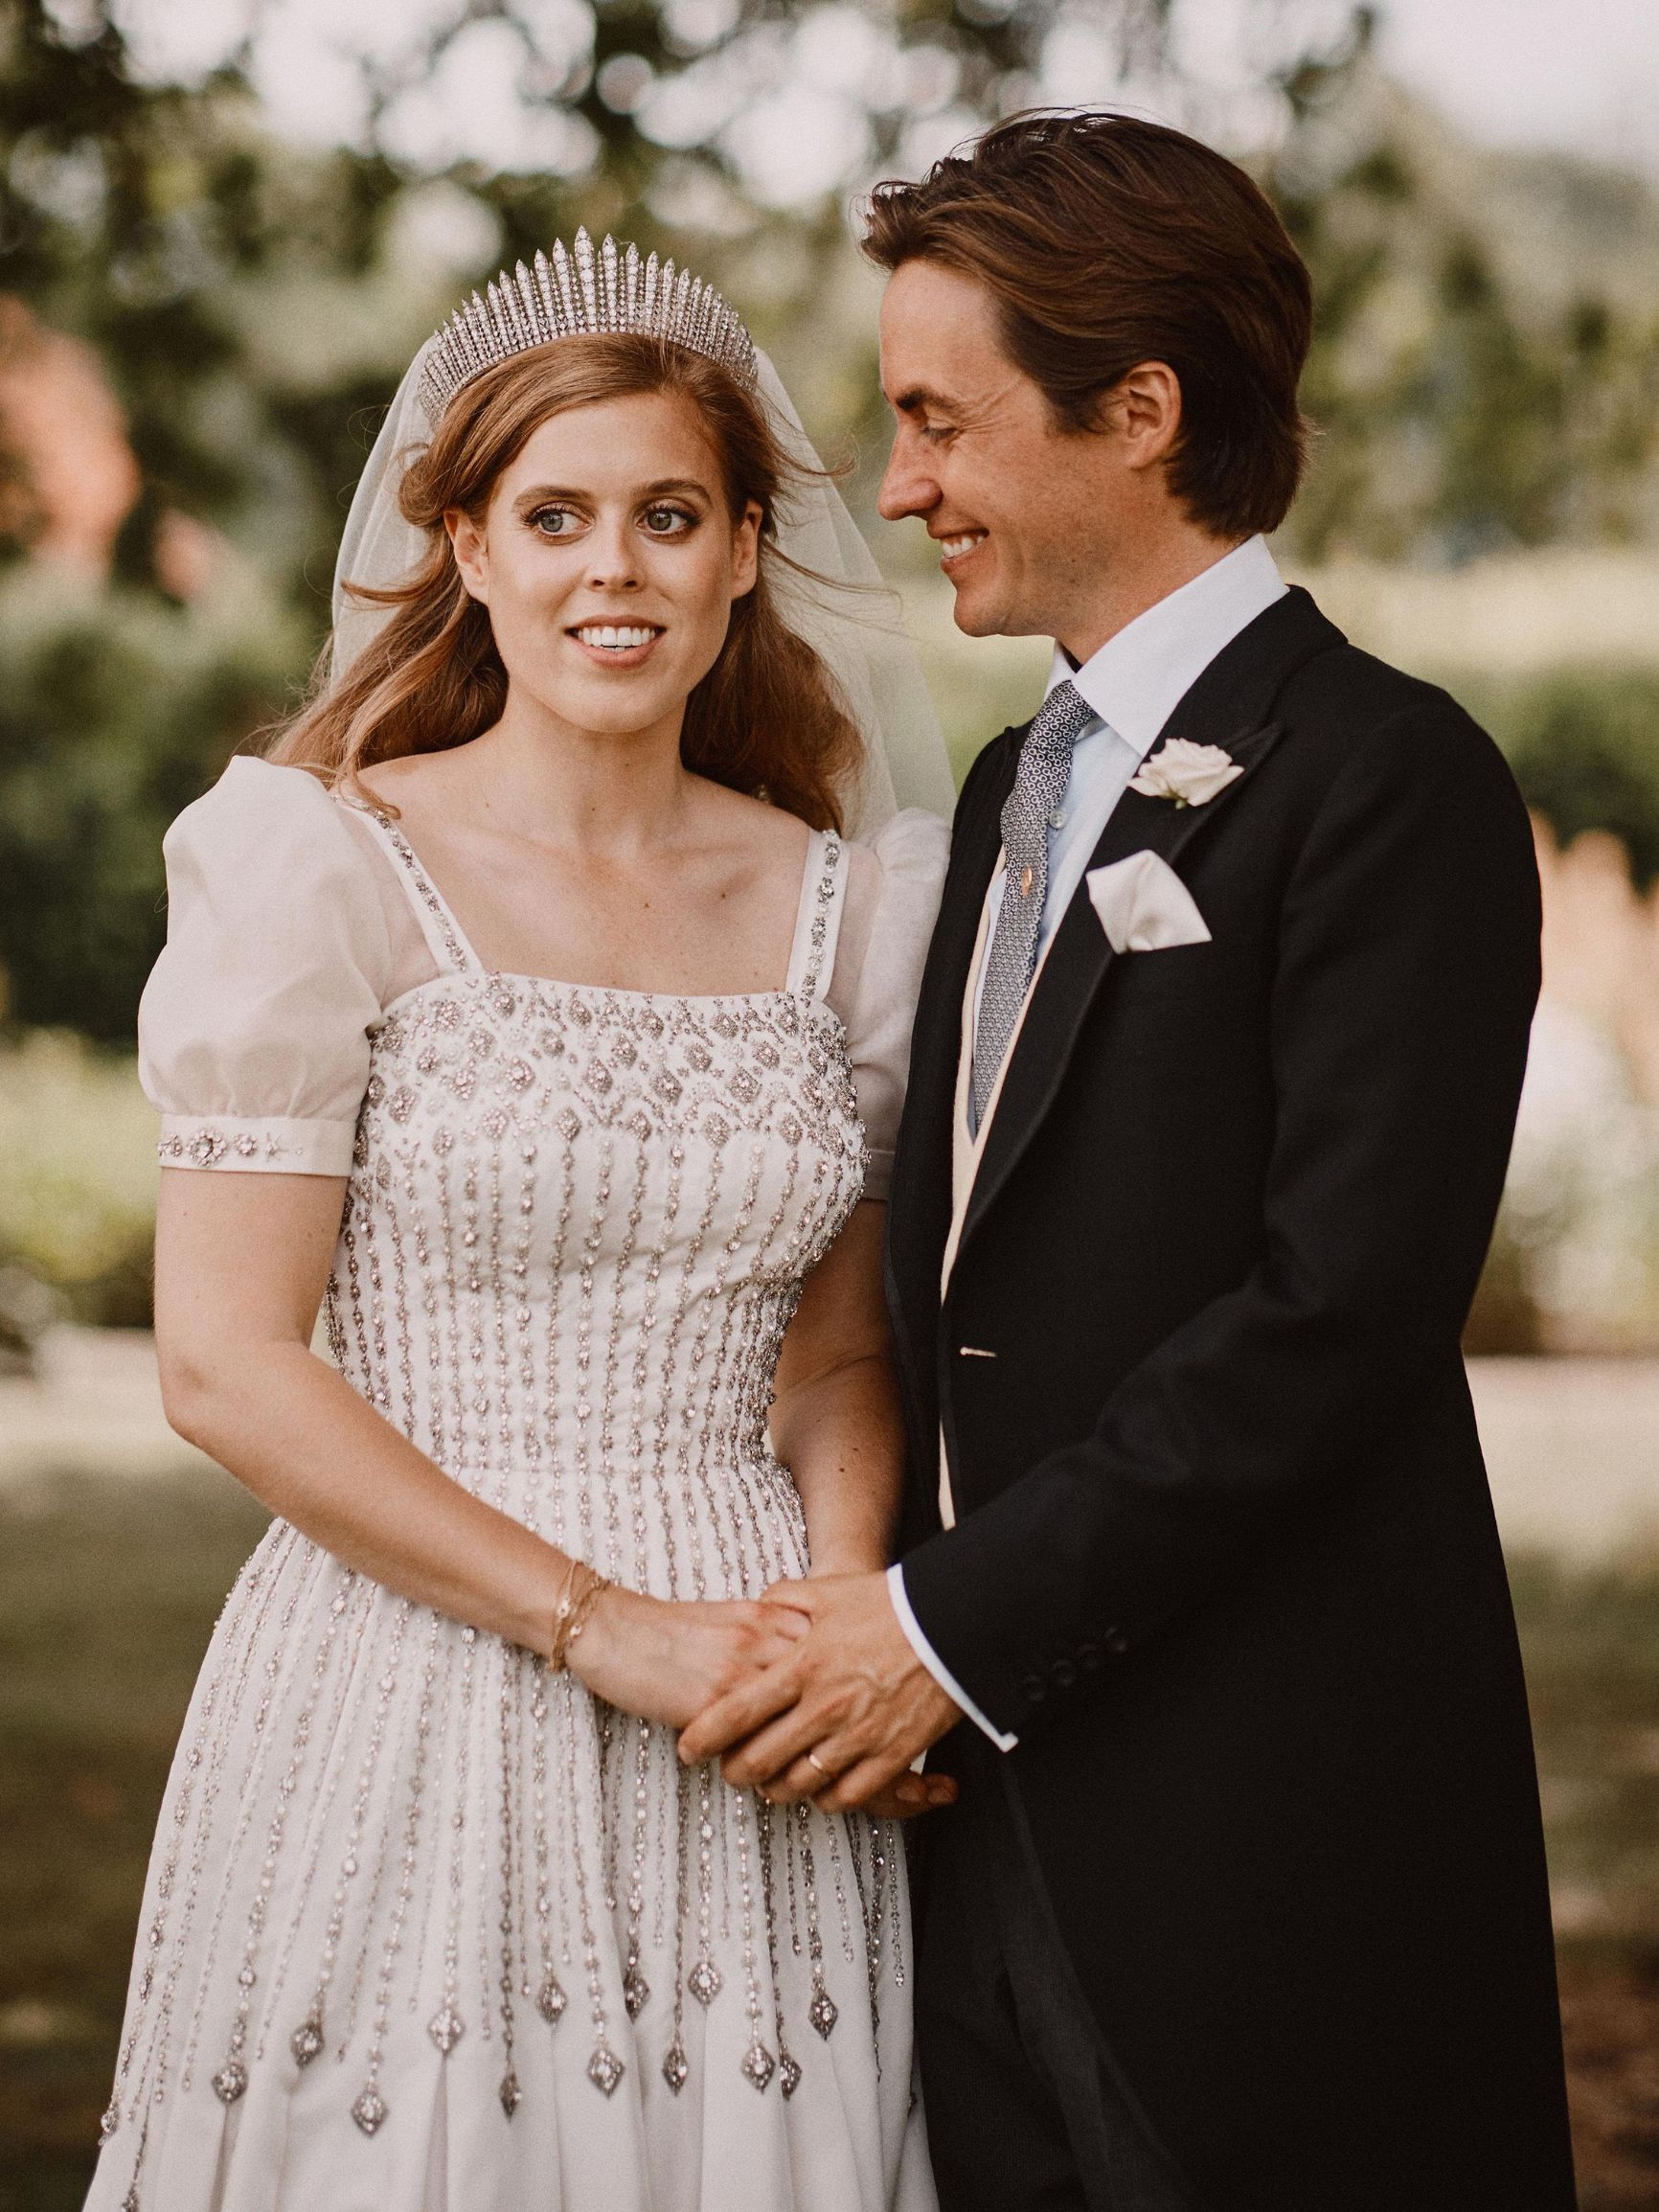 Official wedding photograph of Princess Beatrice and Edoardo Mapelli Mozzi after their wedding at The Royal Chapel of All Saints at Royal Lodge, Windsor, Berkshire, UK, on the 17th July 2020.  Picture by Benjamin Wheeler/WPA-Pool  NEWS EDITORIAL USE ONLY. NO COMMERCIAL USE. NO MERCHANDISING, ADVERTISING, SOUVENIRS, MEMORABILIA or COLOURABLY SIMILAR. NOT FOR USE AFTER 18th January 2021  WITHOUT PRIOR PERMISSION FROM BUCKINGHAM PALACE. NO CROPPING.   The photograph must not be digitally enhanced, manipulated or modified in any manner or form and must include all of the individuals in the photograph when published. //GEORGEROGERS_WED2292/2007191755/Credit:GEORGE ROGERS-POOL/SIPA/2007191755,Image: 544928621, License: Rights-managed, Restrictions: , Model Release: no, Credit line: GEORGE ROGERS-POOL / Sipa Press / Profimedia